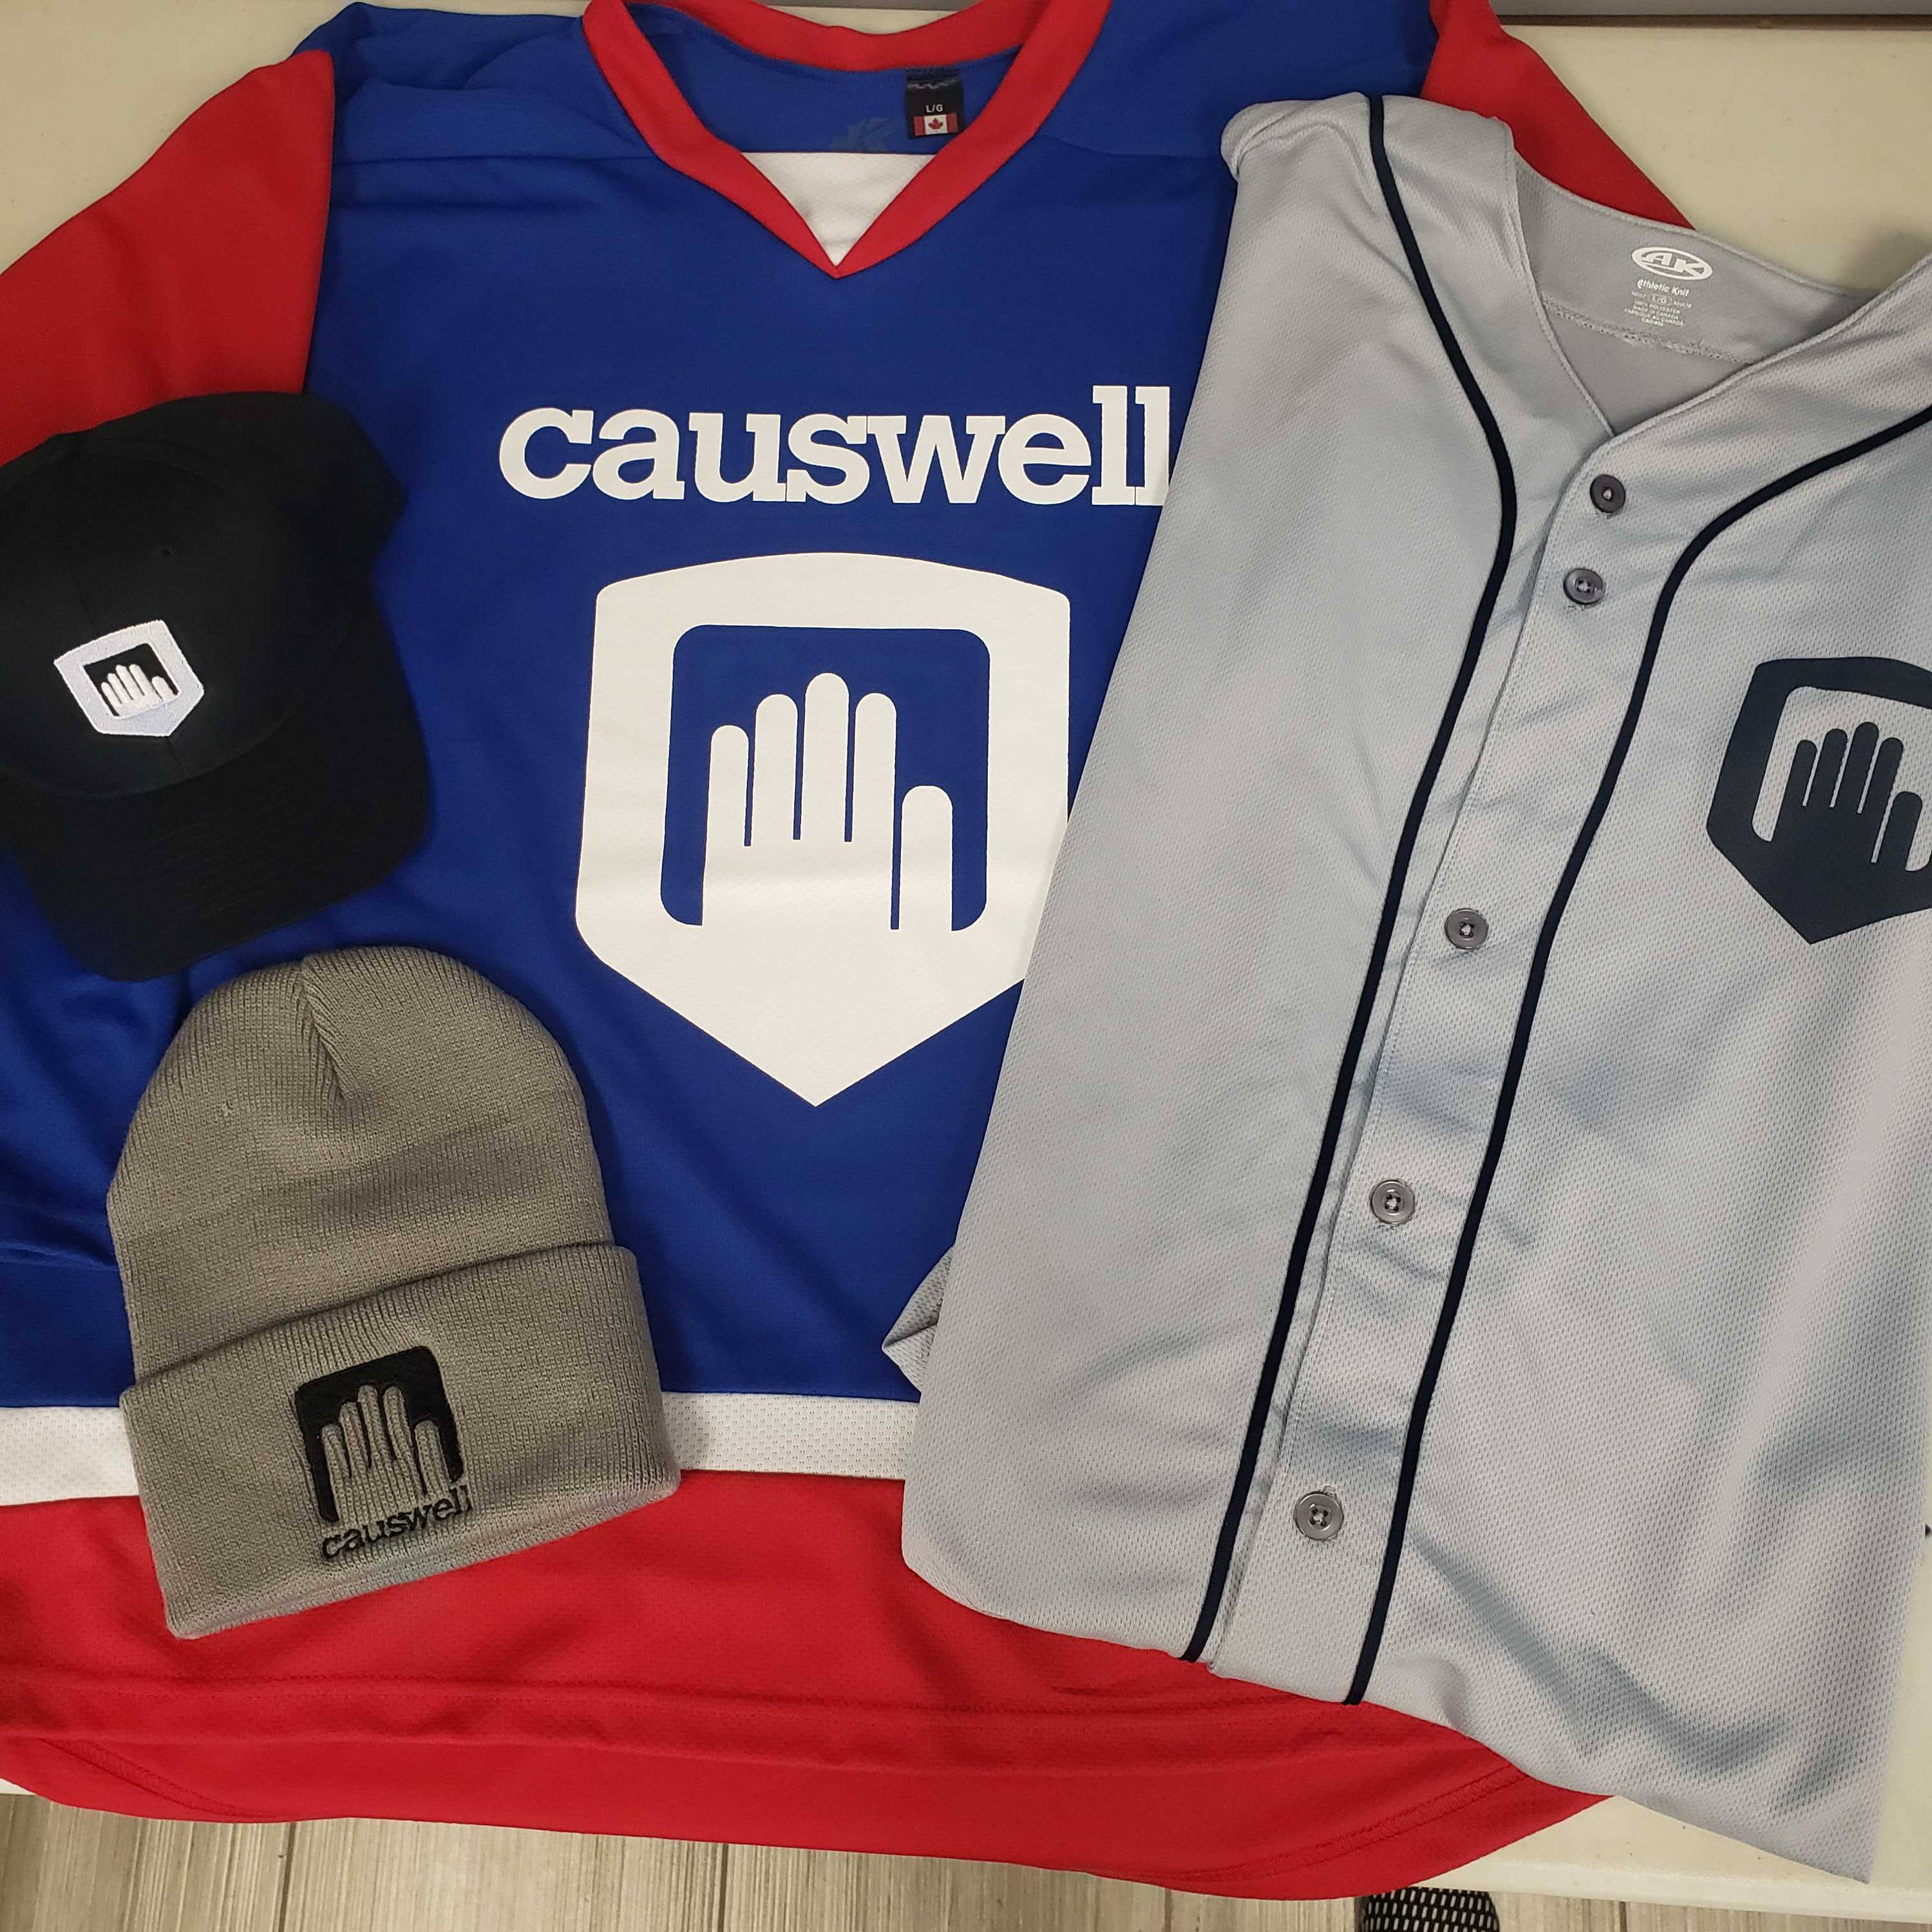 Example Custom Screen Printed and Embroidered Swag Items